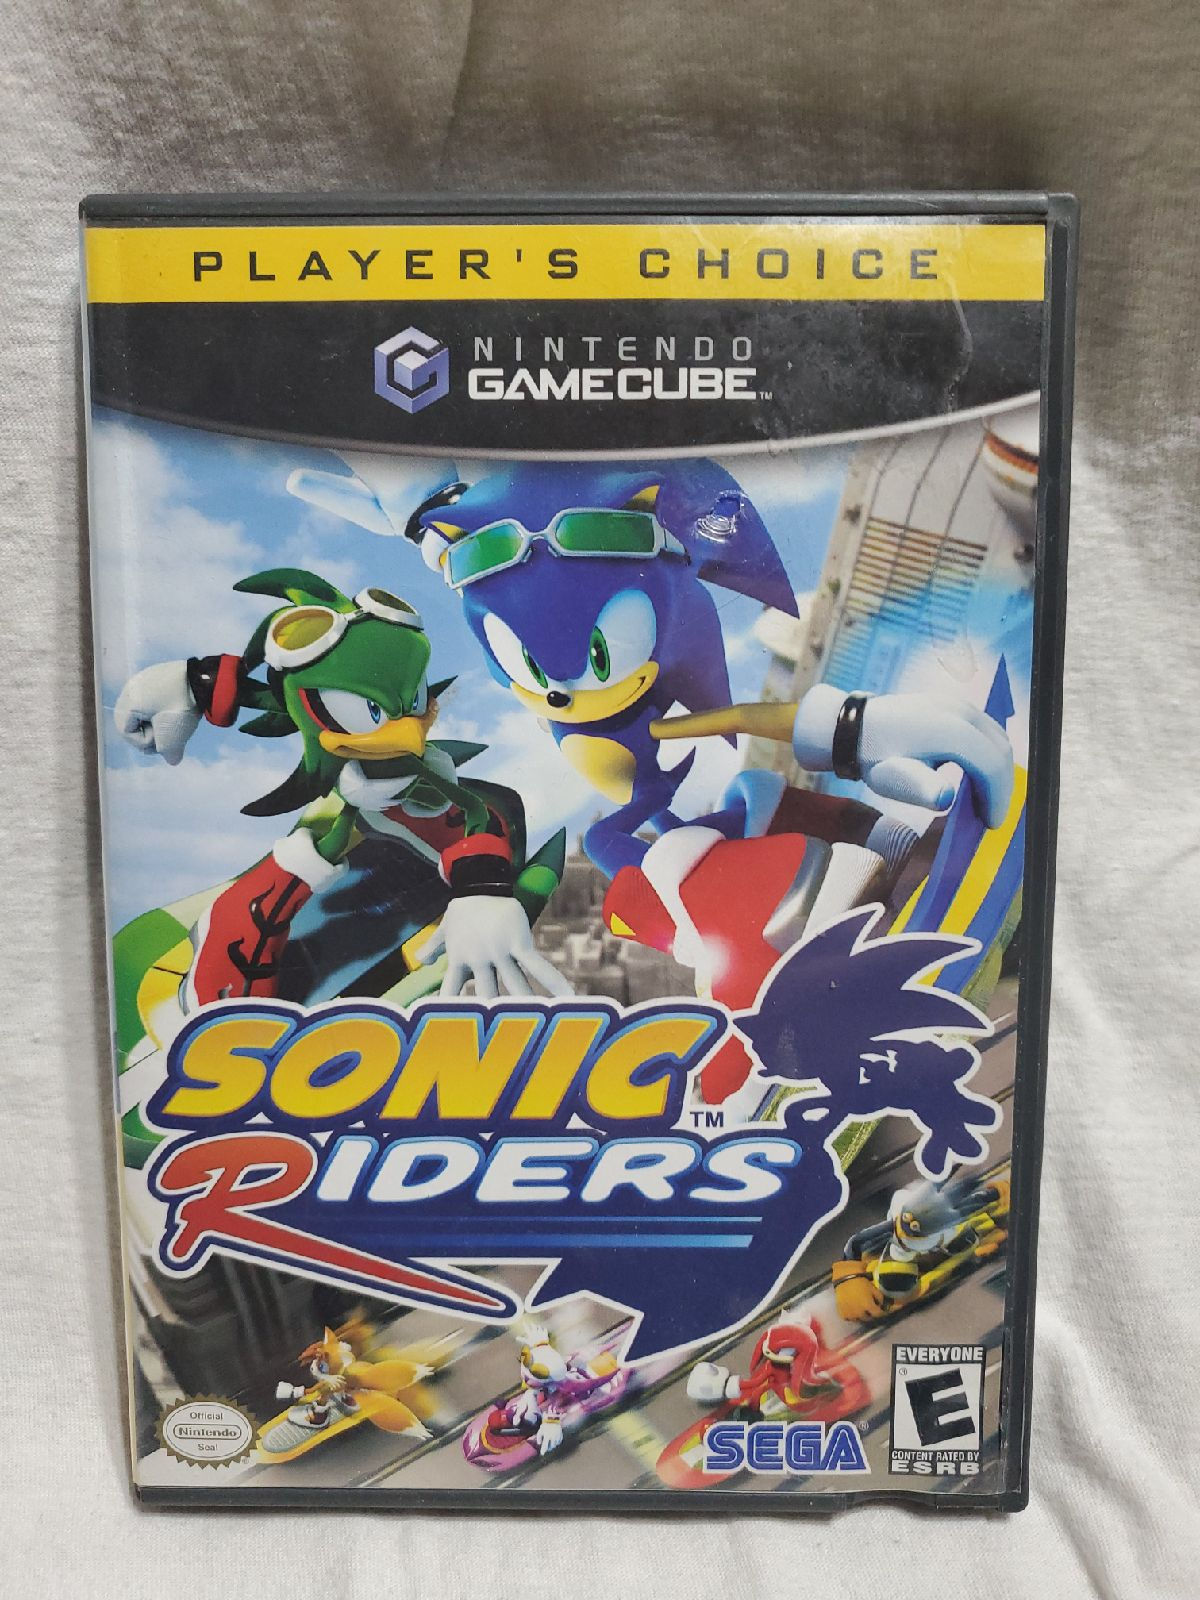 GameCube Sonic Riders Players Choice